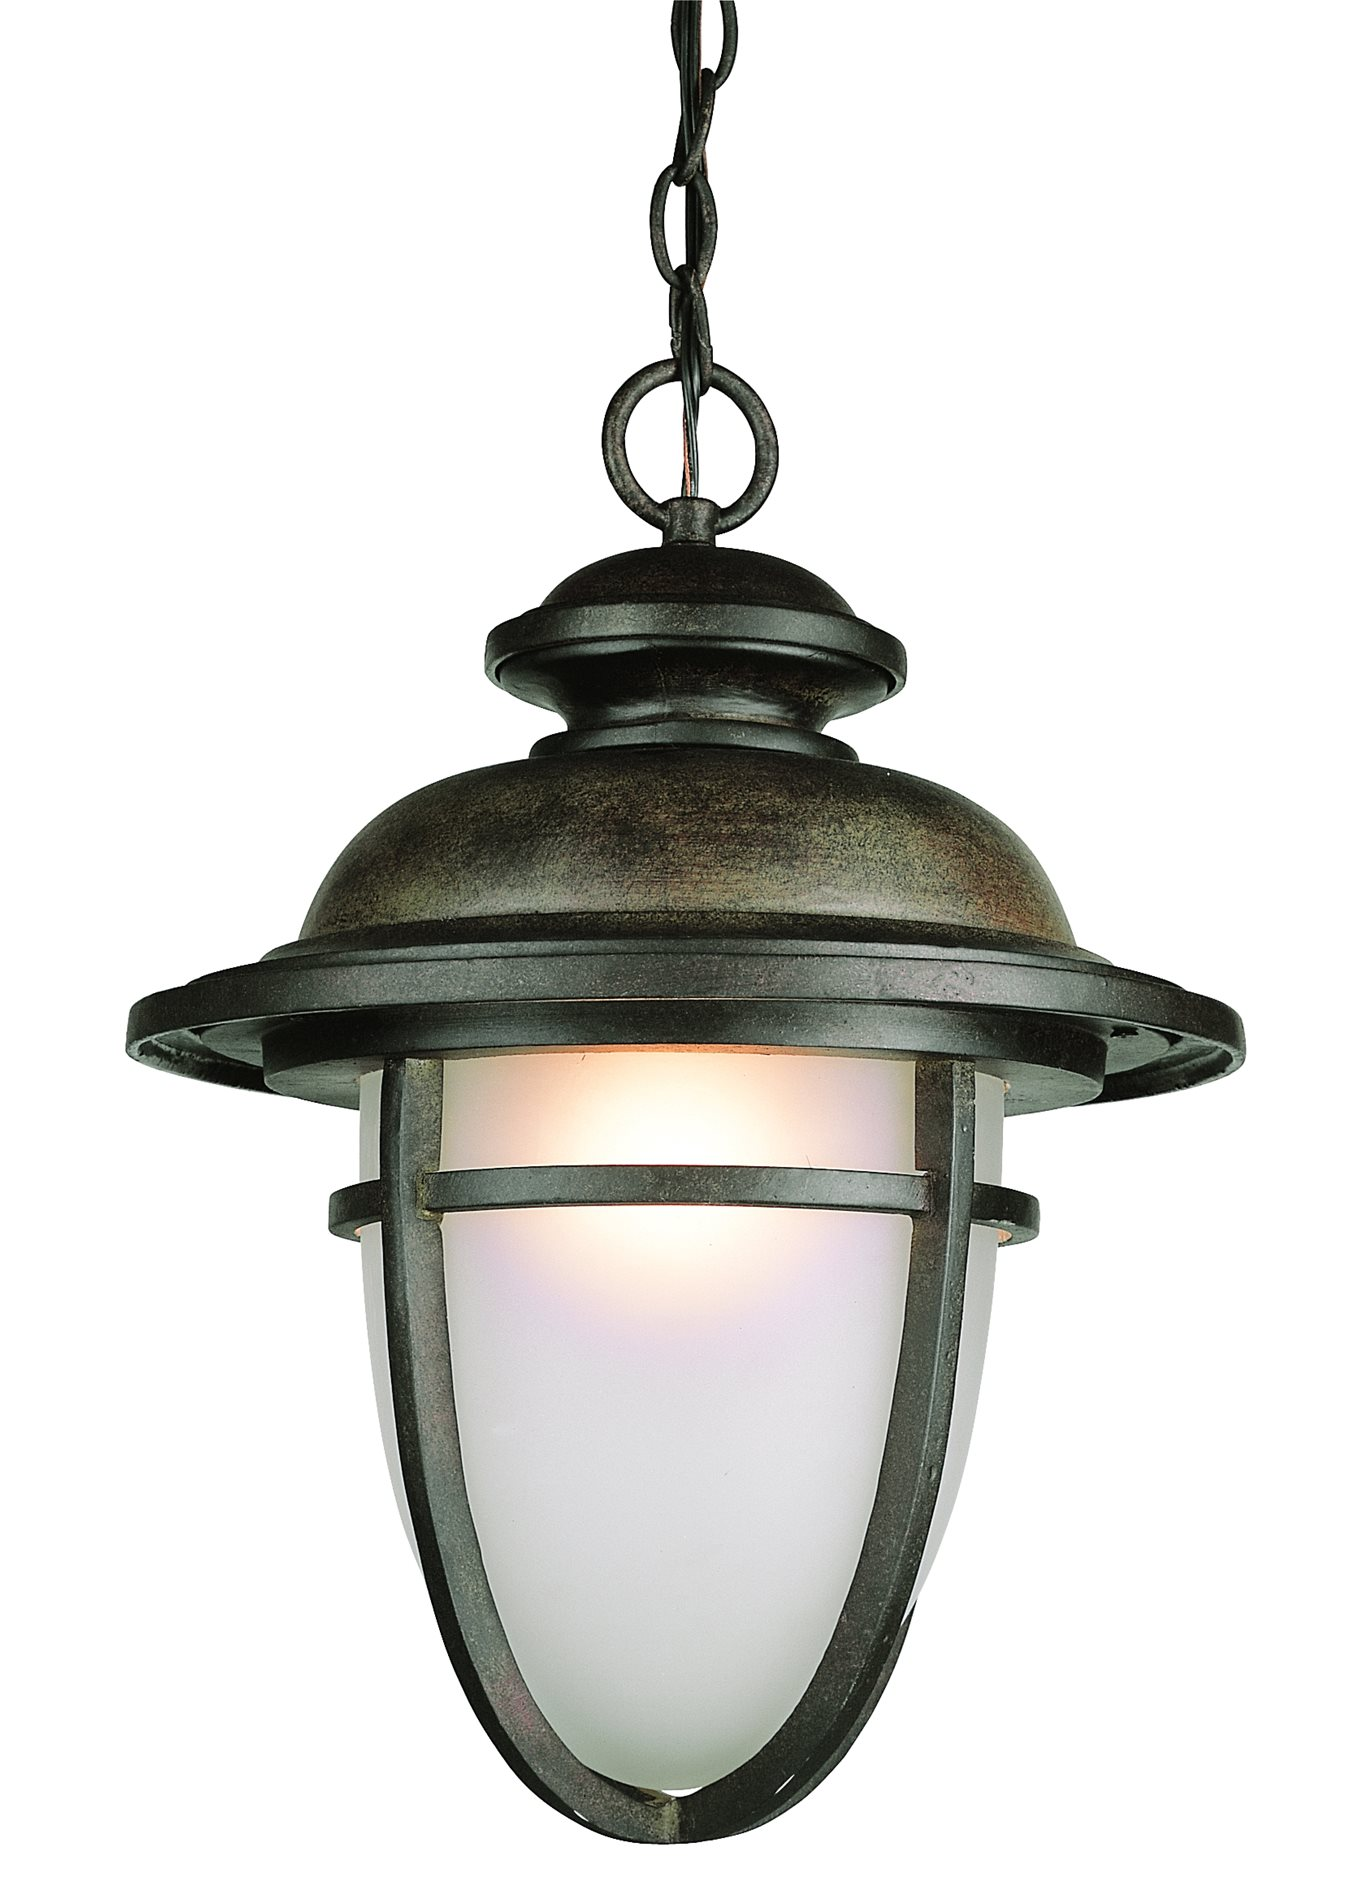 Trans Globe Lighting 5855 DR Coastal Transitional Outdoor Hanging Light TG 58